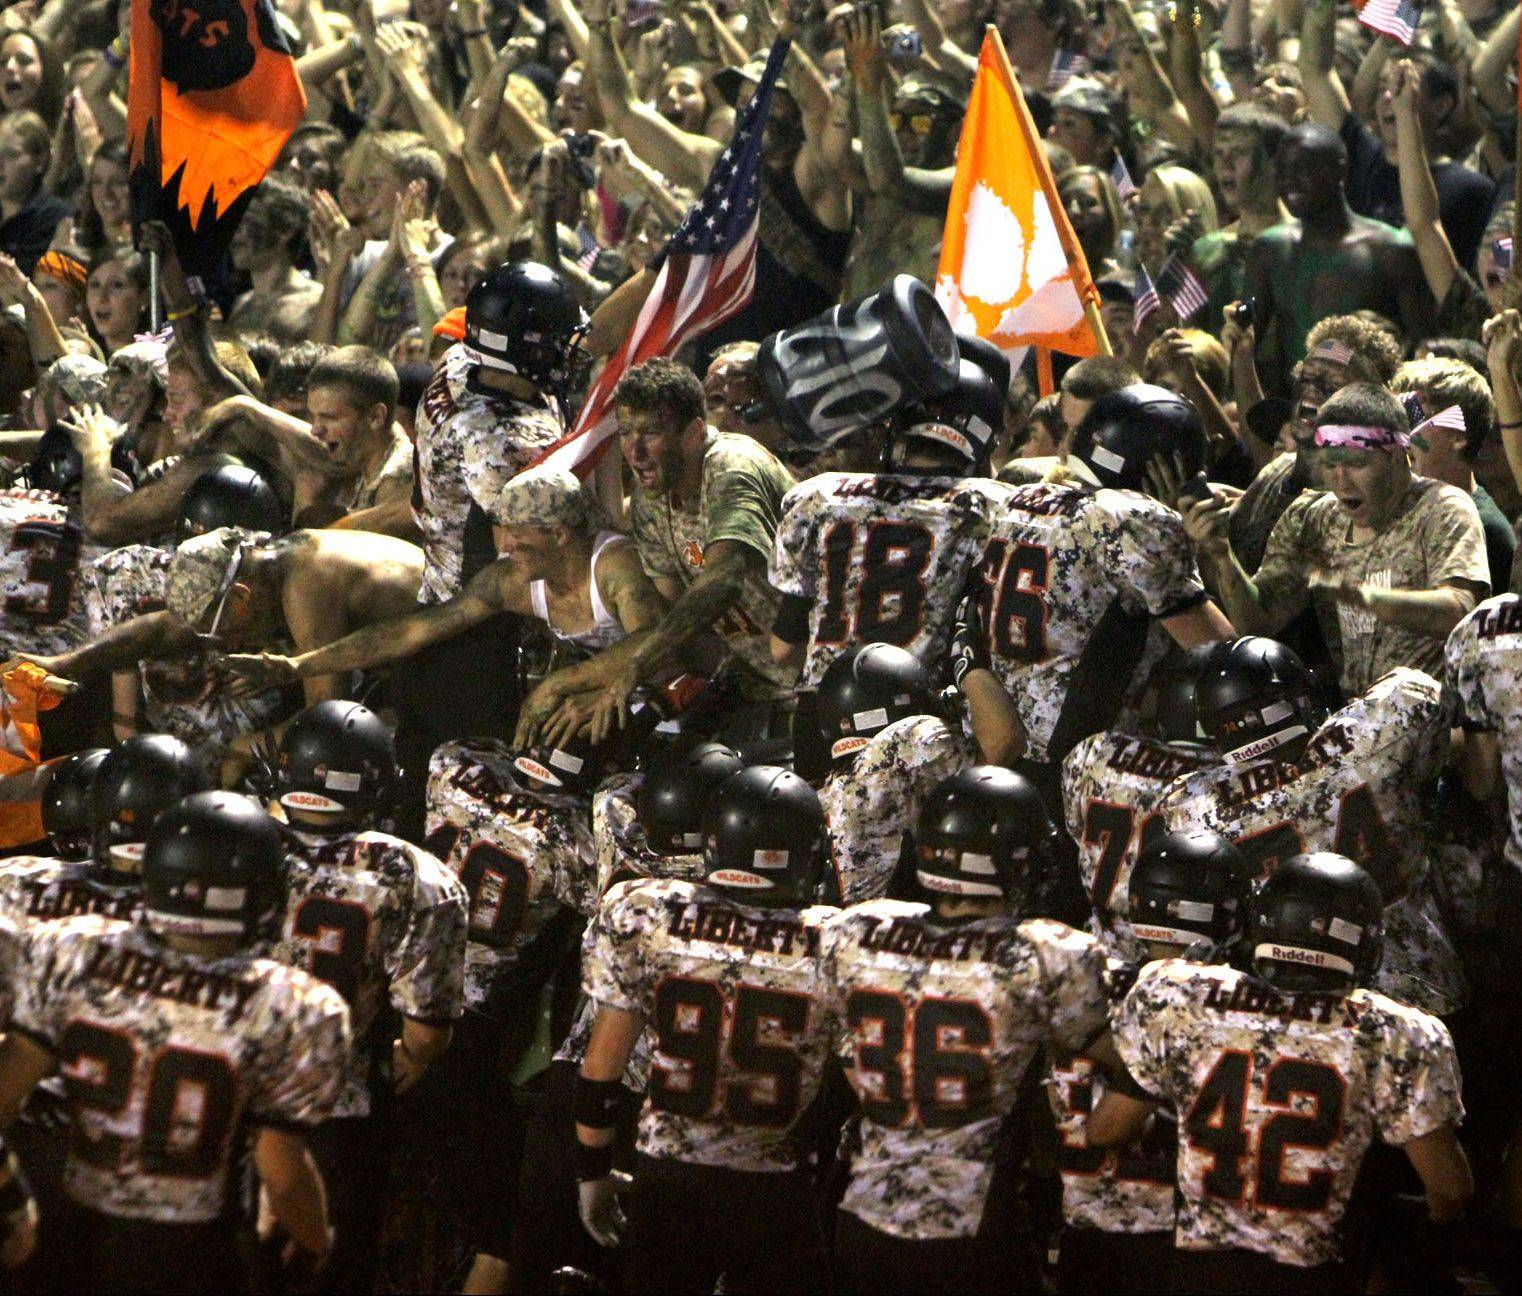 Libertyville players, wearing special camouflage uniforms, leap into the stands after taking the field on military appreciation night.